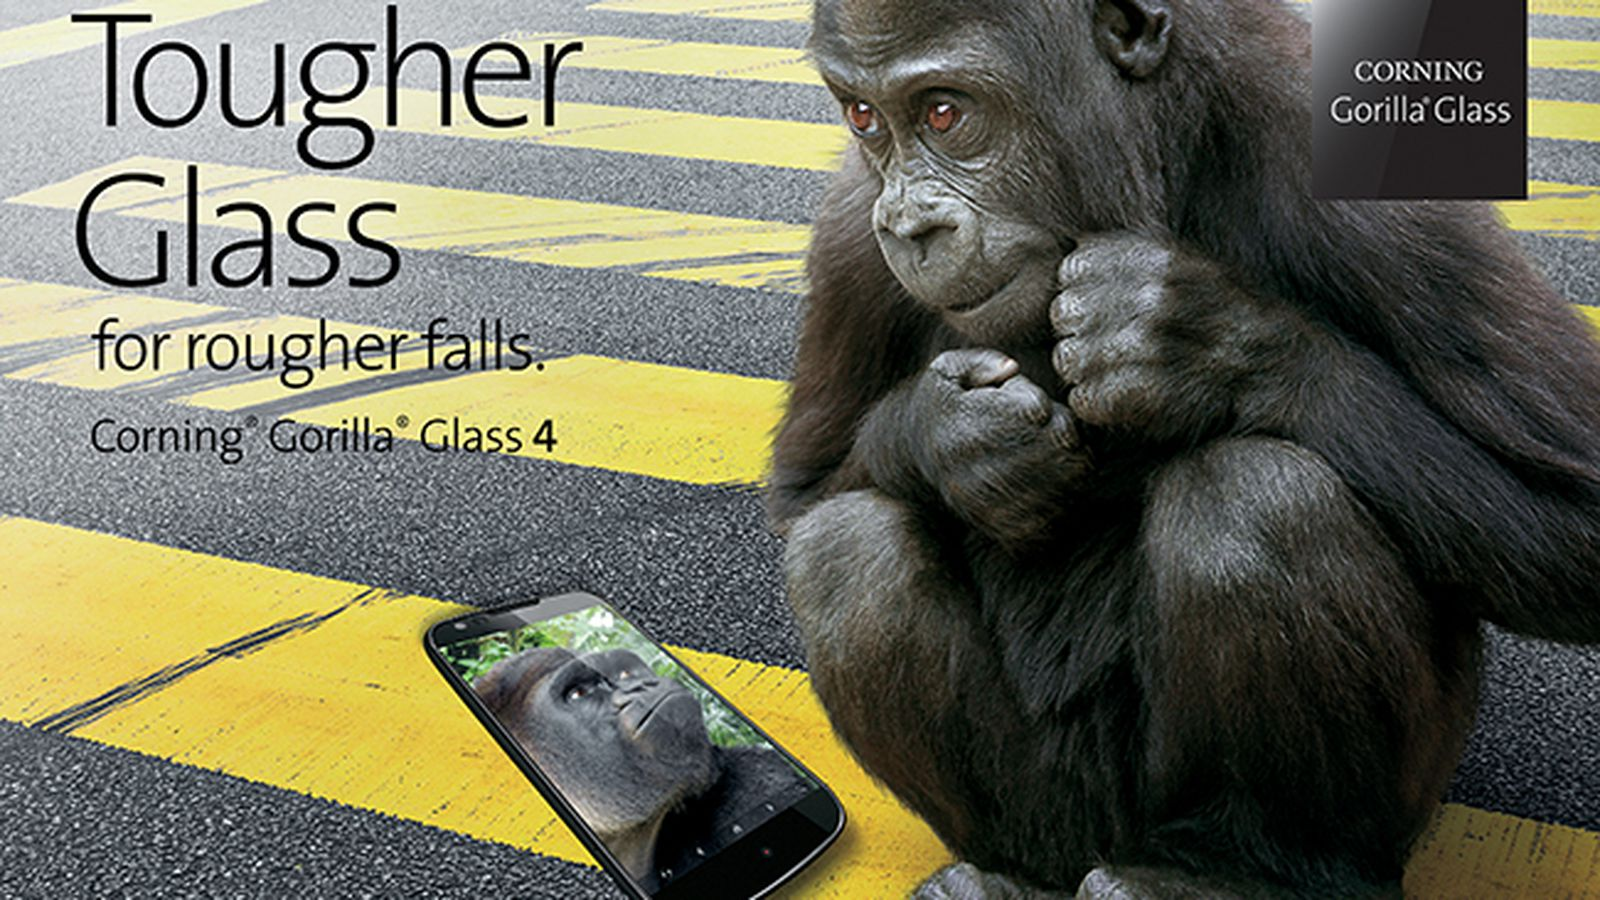 Corning's Gorilla Glass 4 aims to protect your phone from deadly drops - The Verge